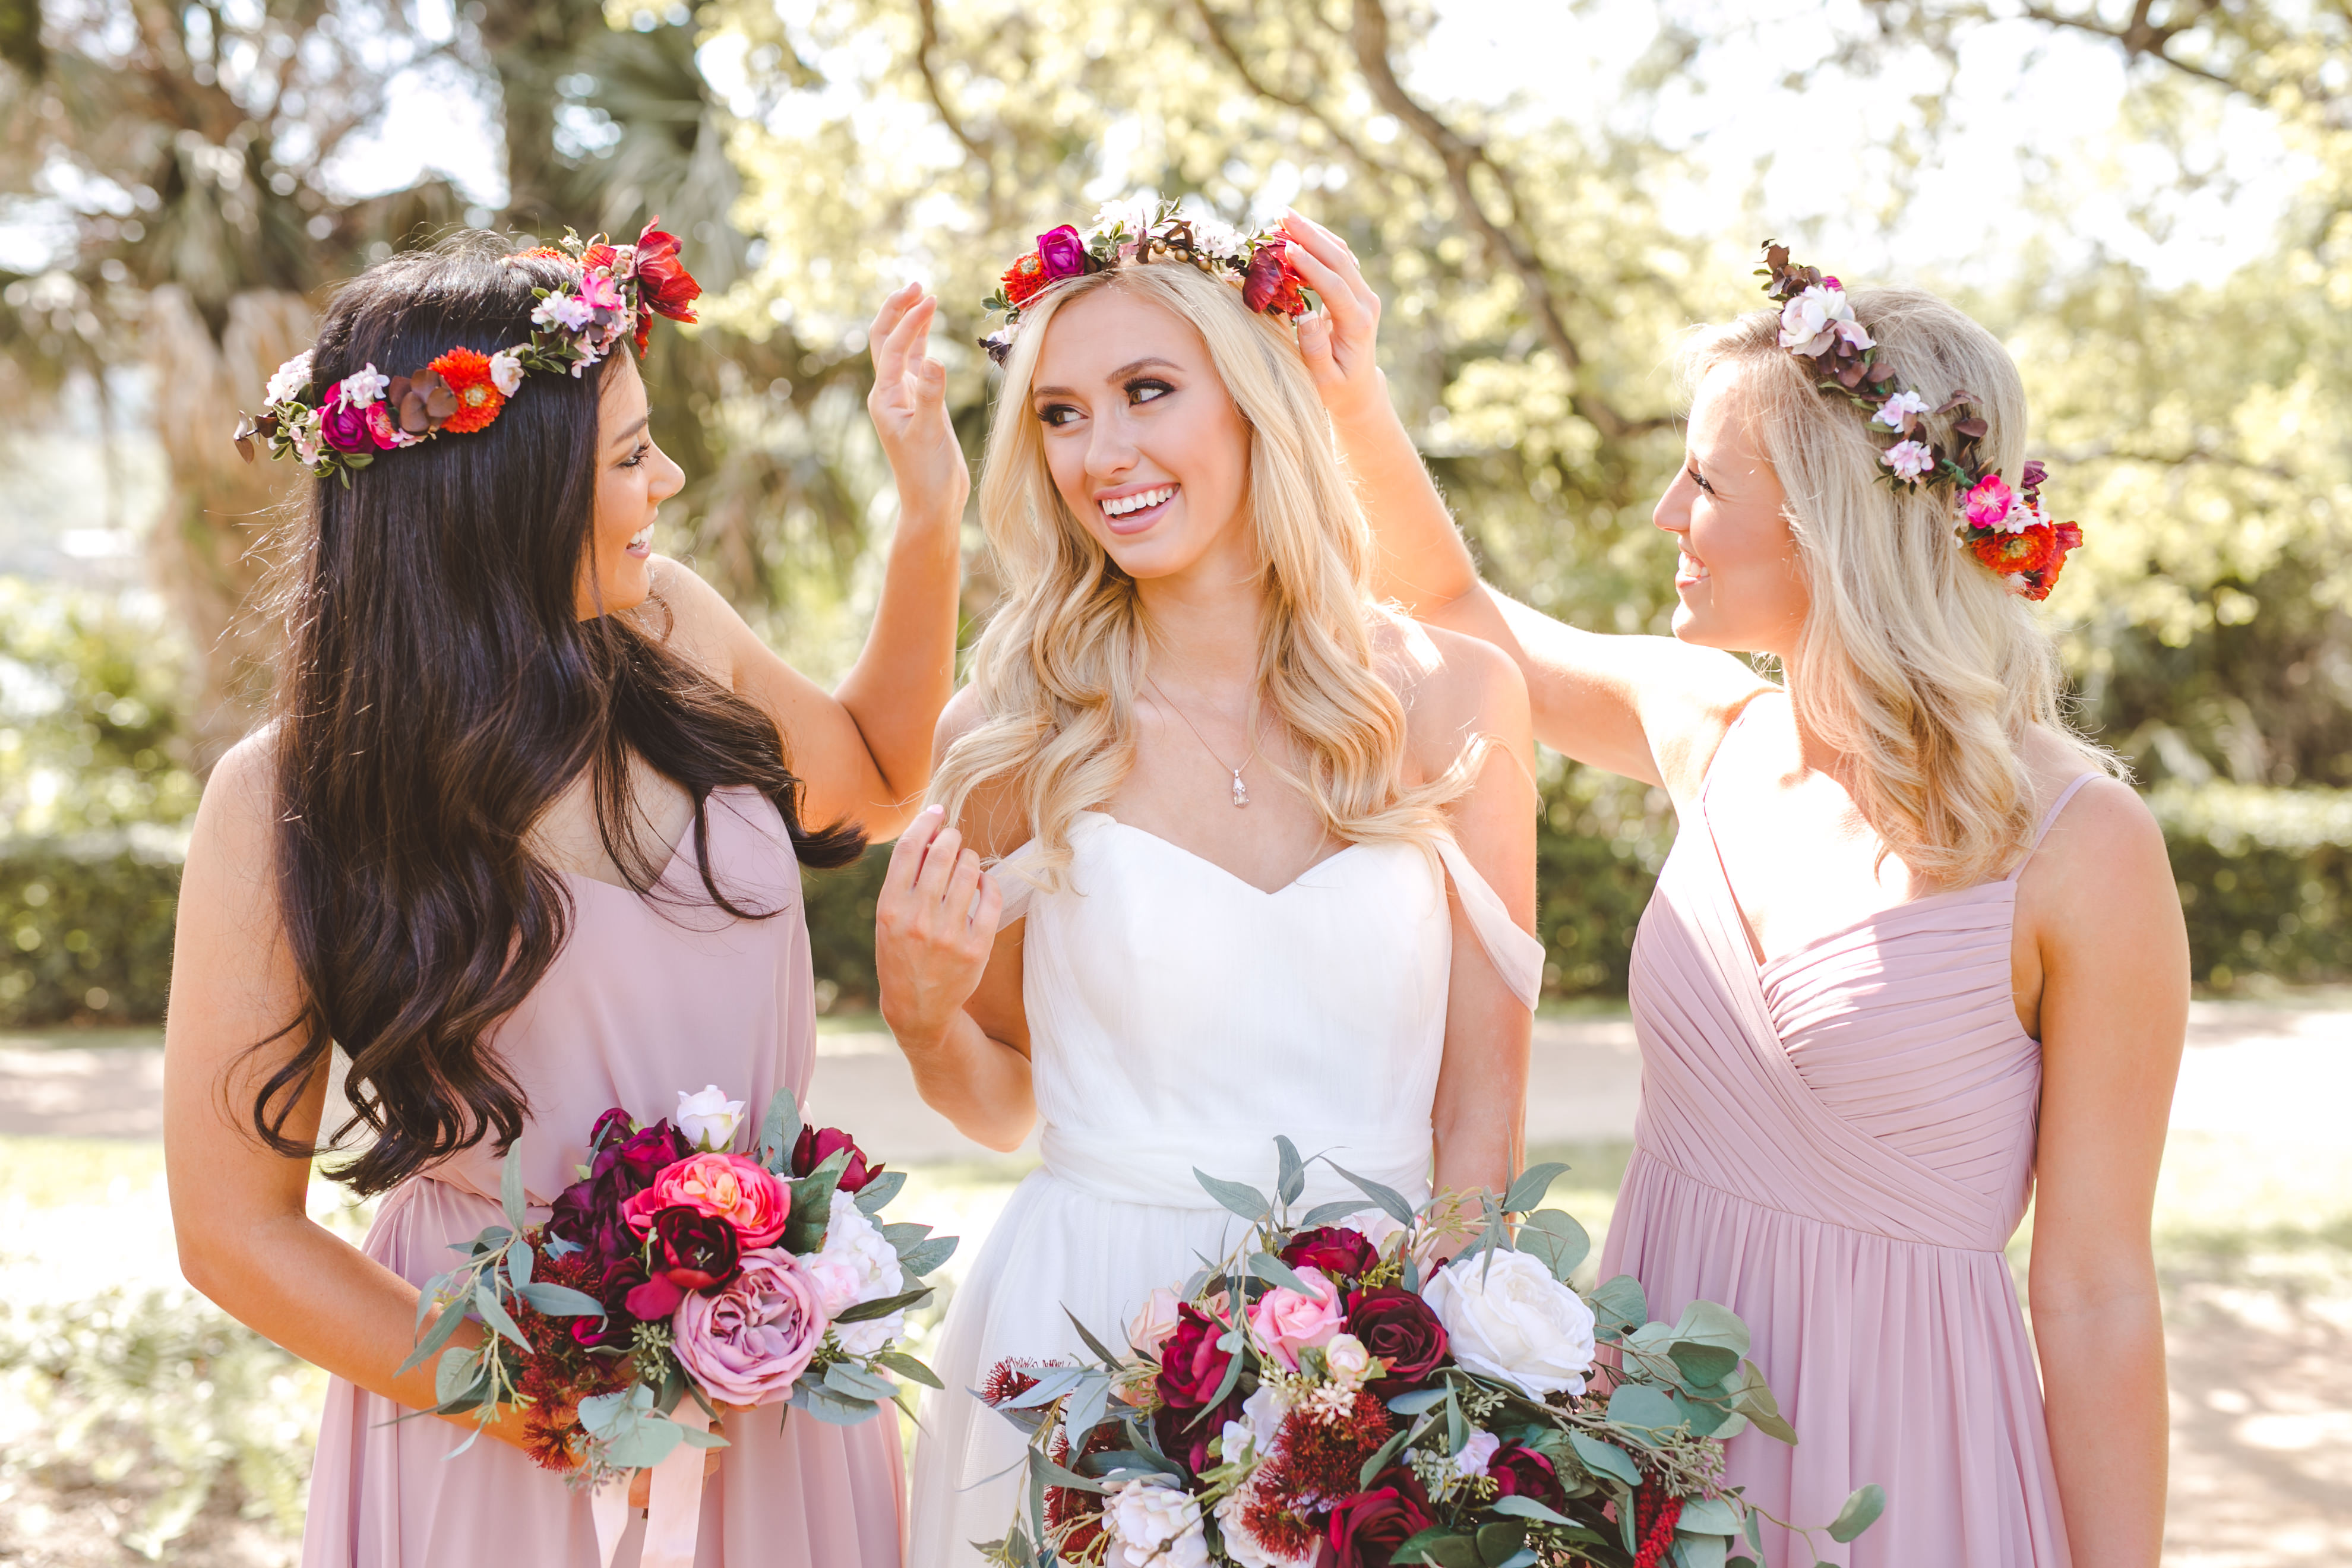 Your bridesmaids will thank you for the new flattering styles from Revelry.